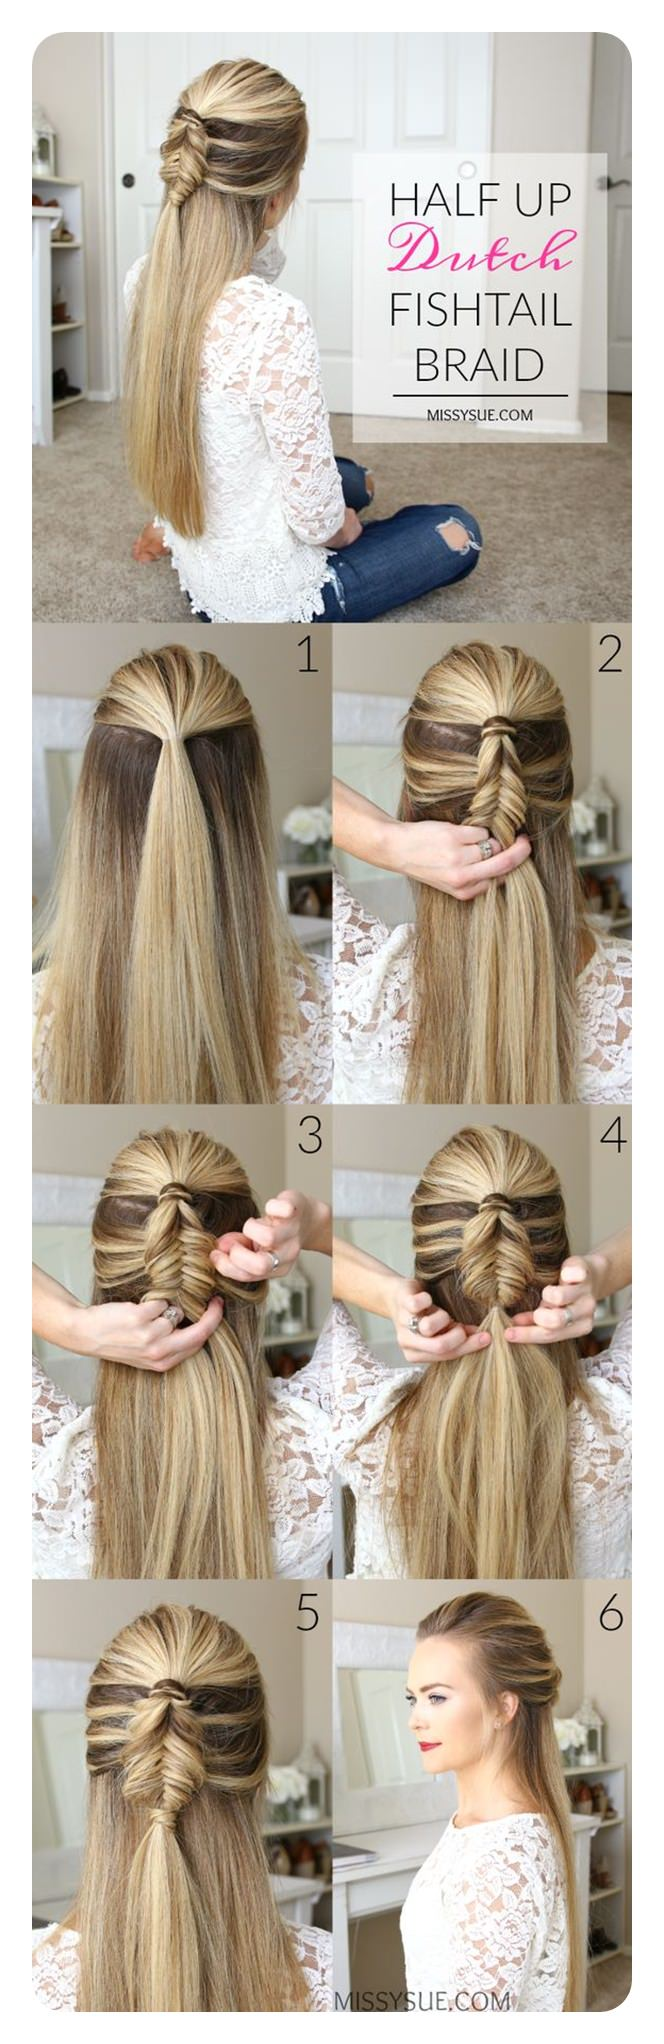 tutorial on how to do a fishtail braid